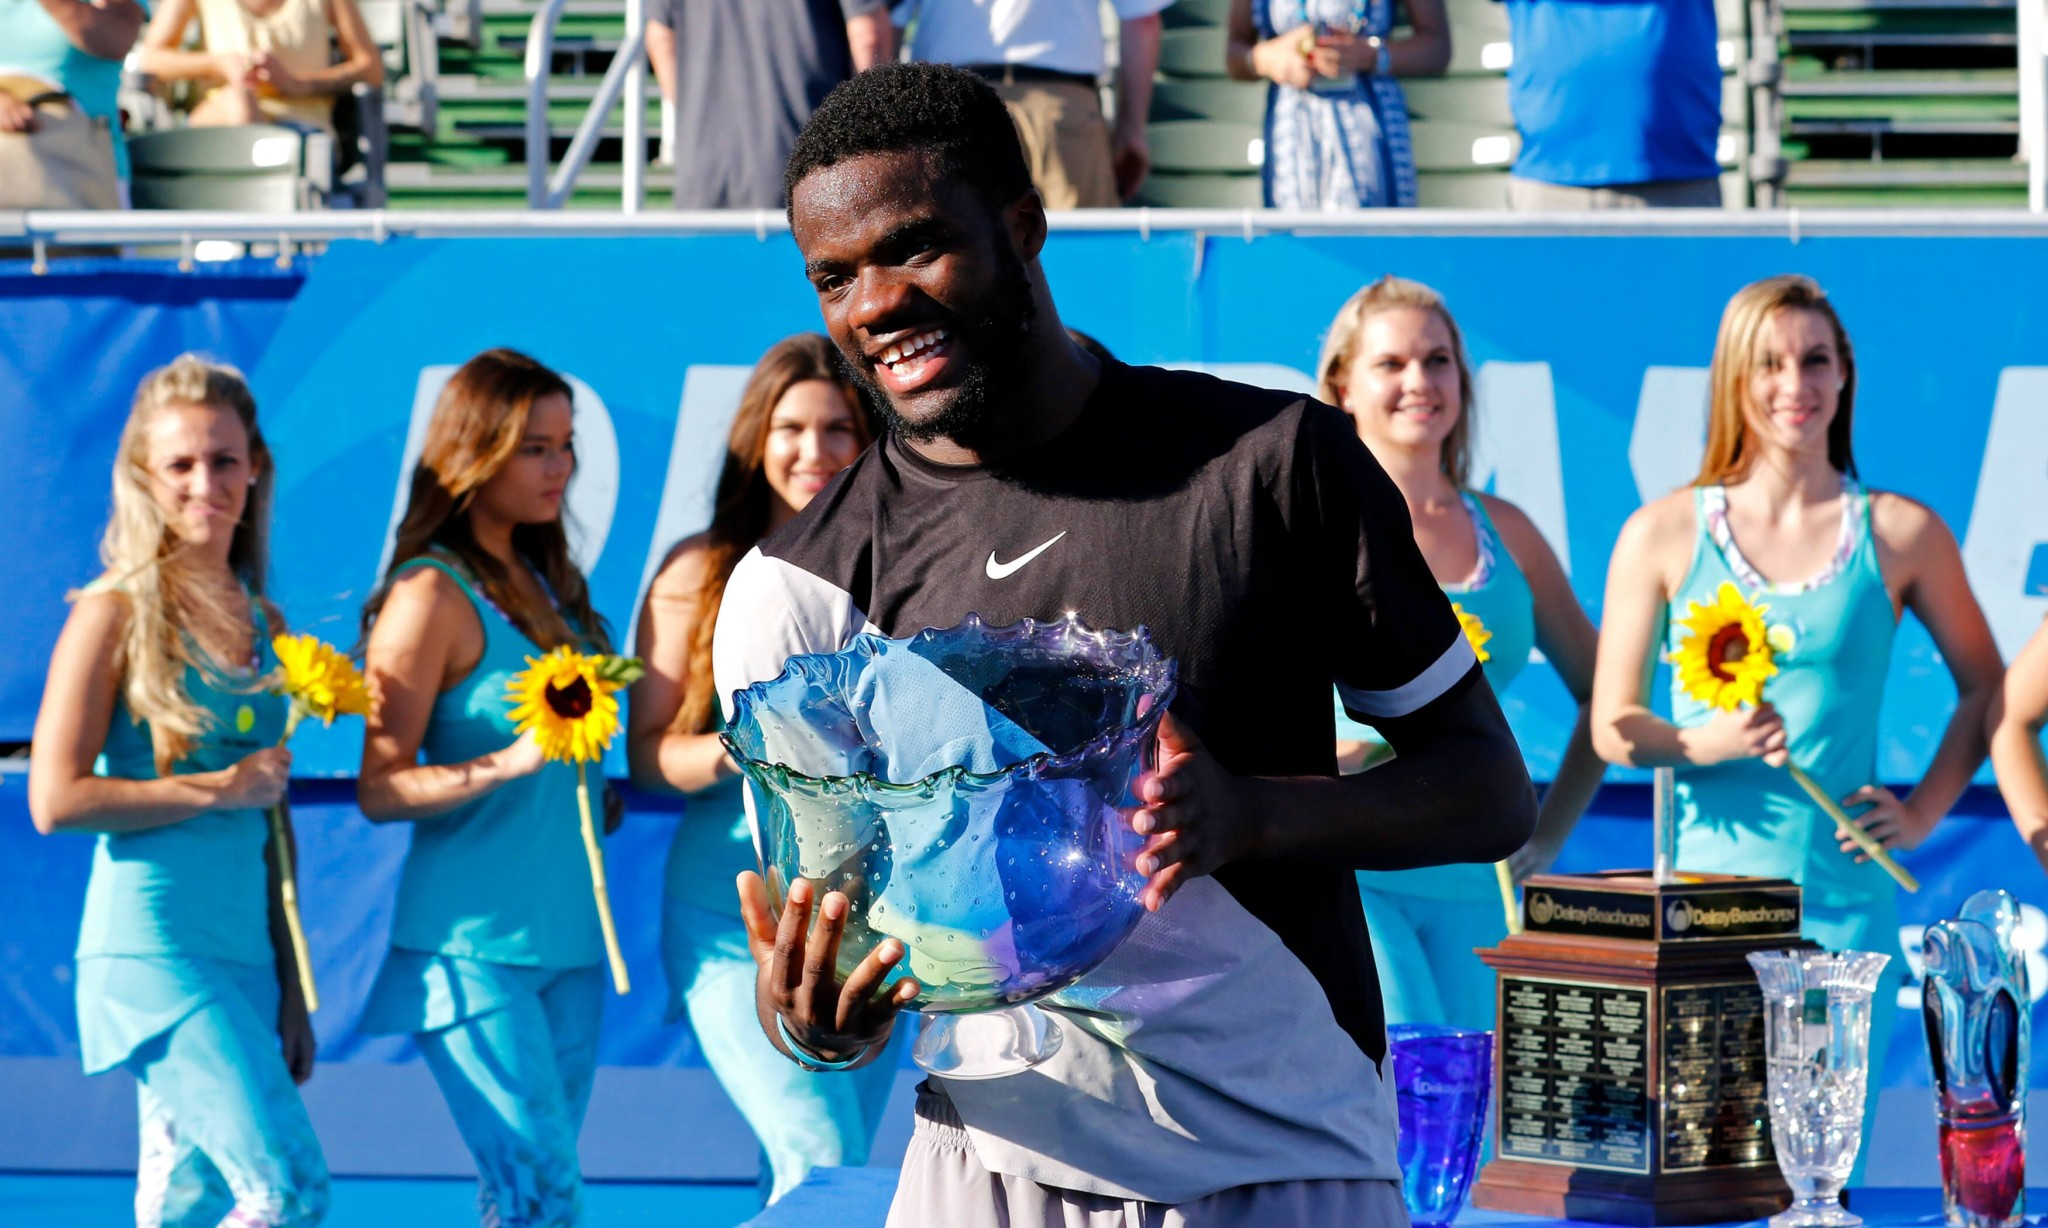 Man Holding Trophy With Tournament Helpers Behind in a Line Holding Flowers